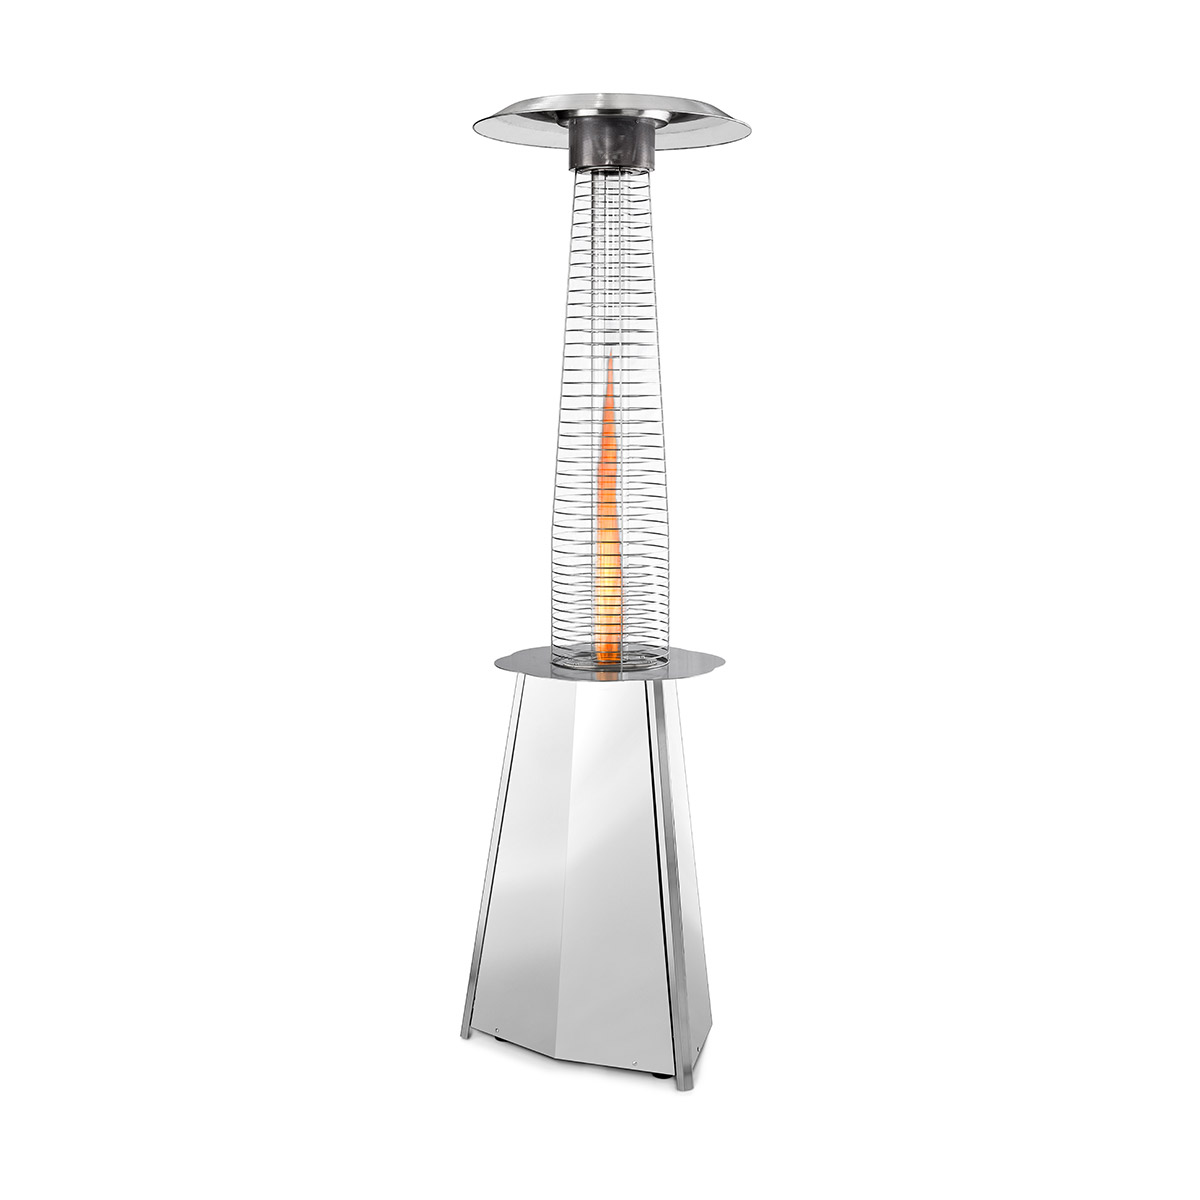 Parasol chauffant gaz - Solflame Inox - Outdoor Heating